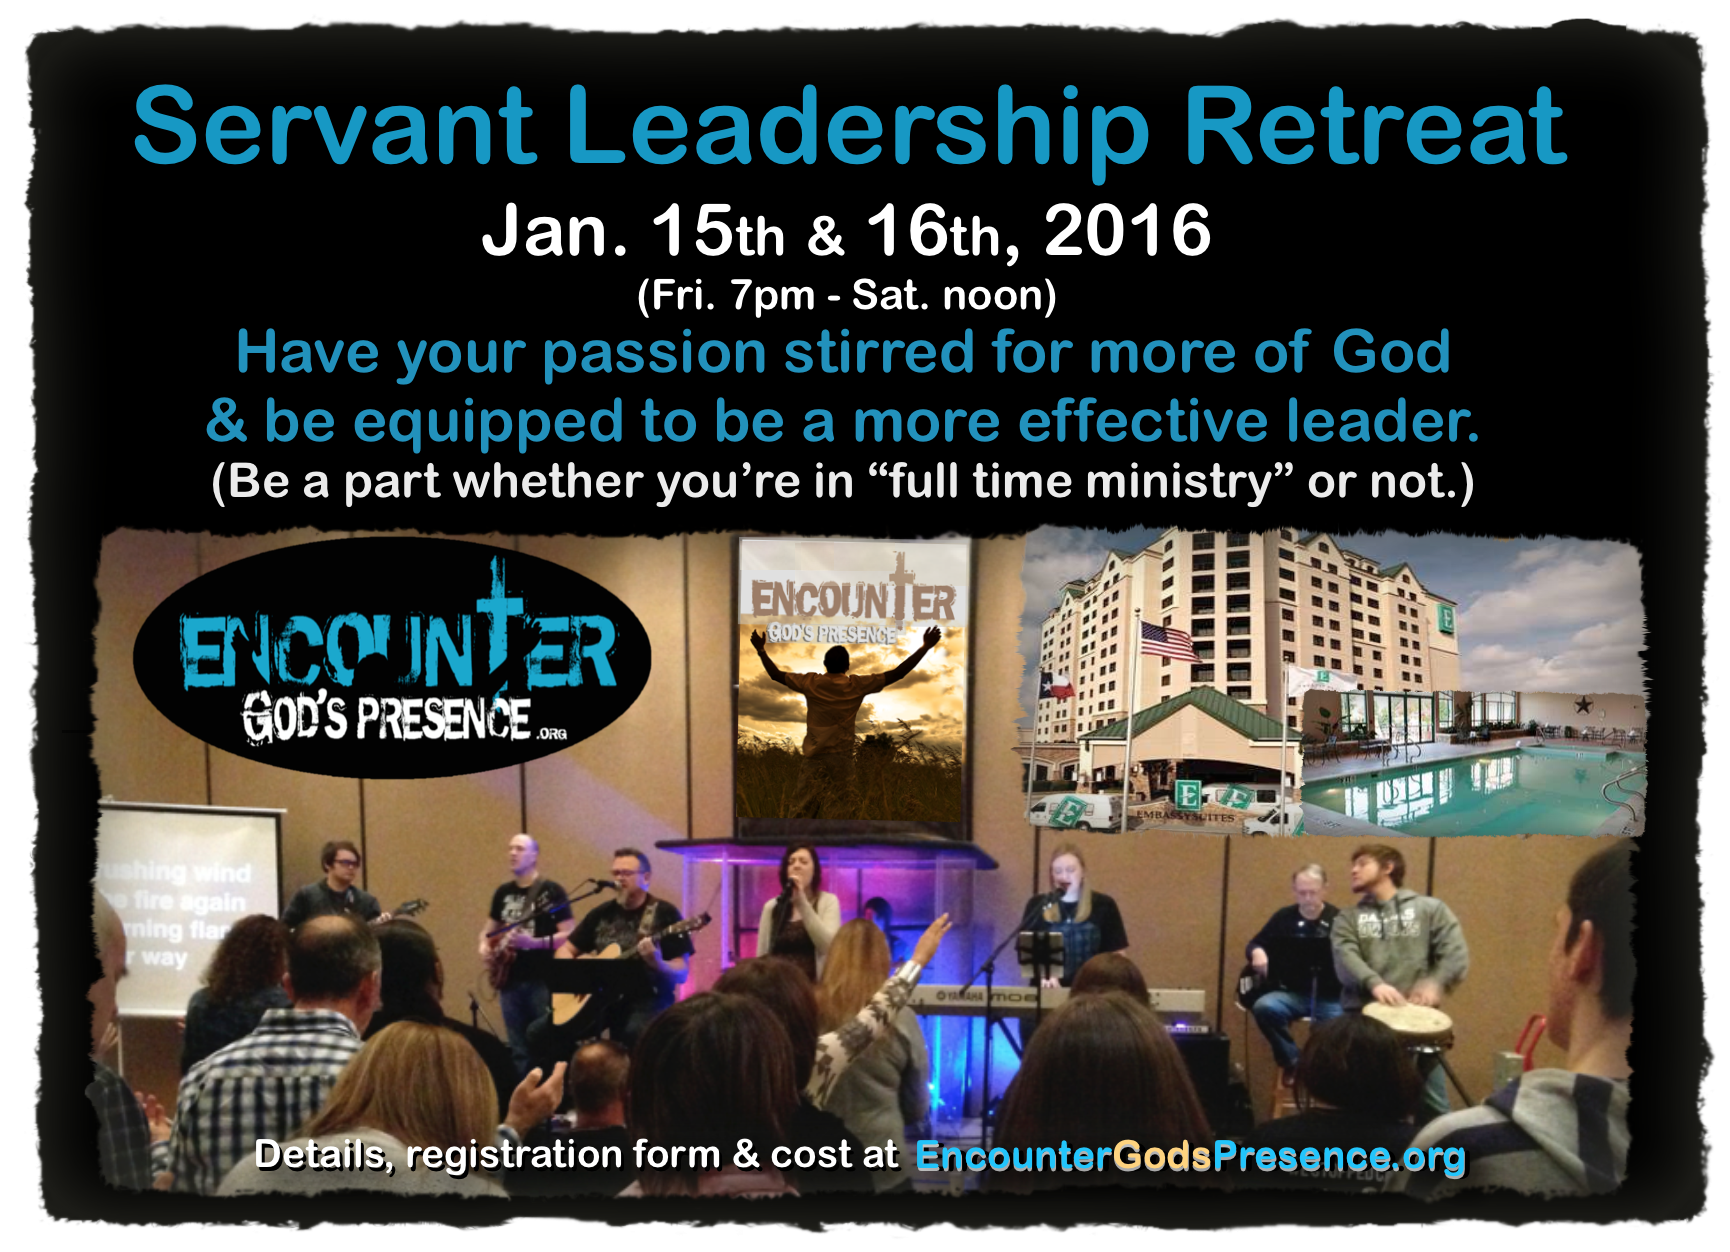 Encounter Servant Leadership Retreat SOCIAL MEDIA flyer